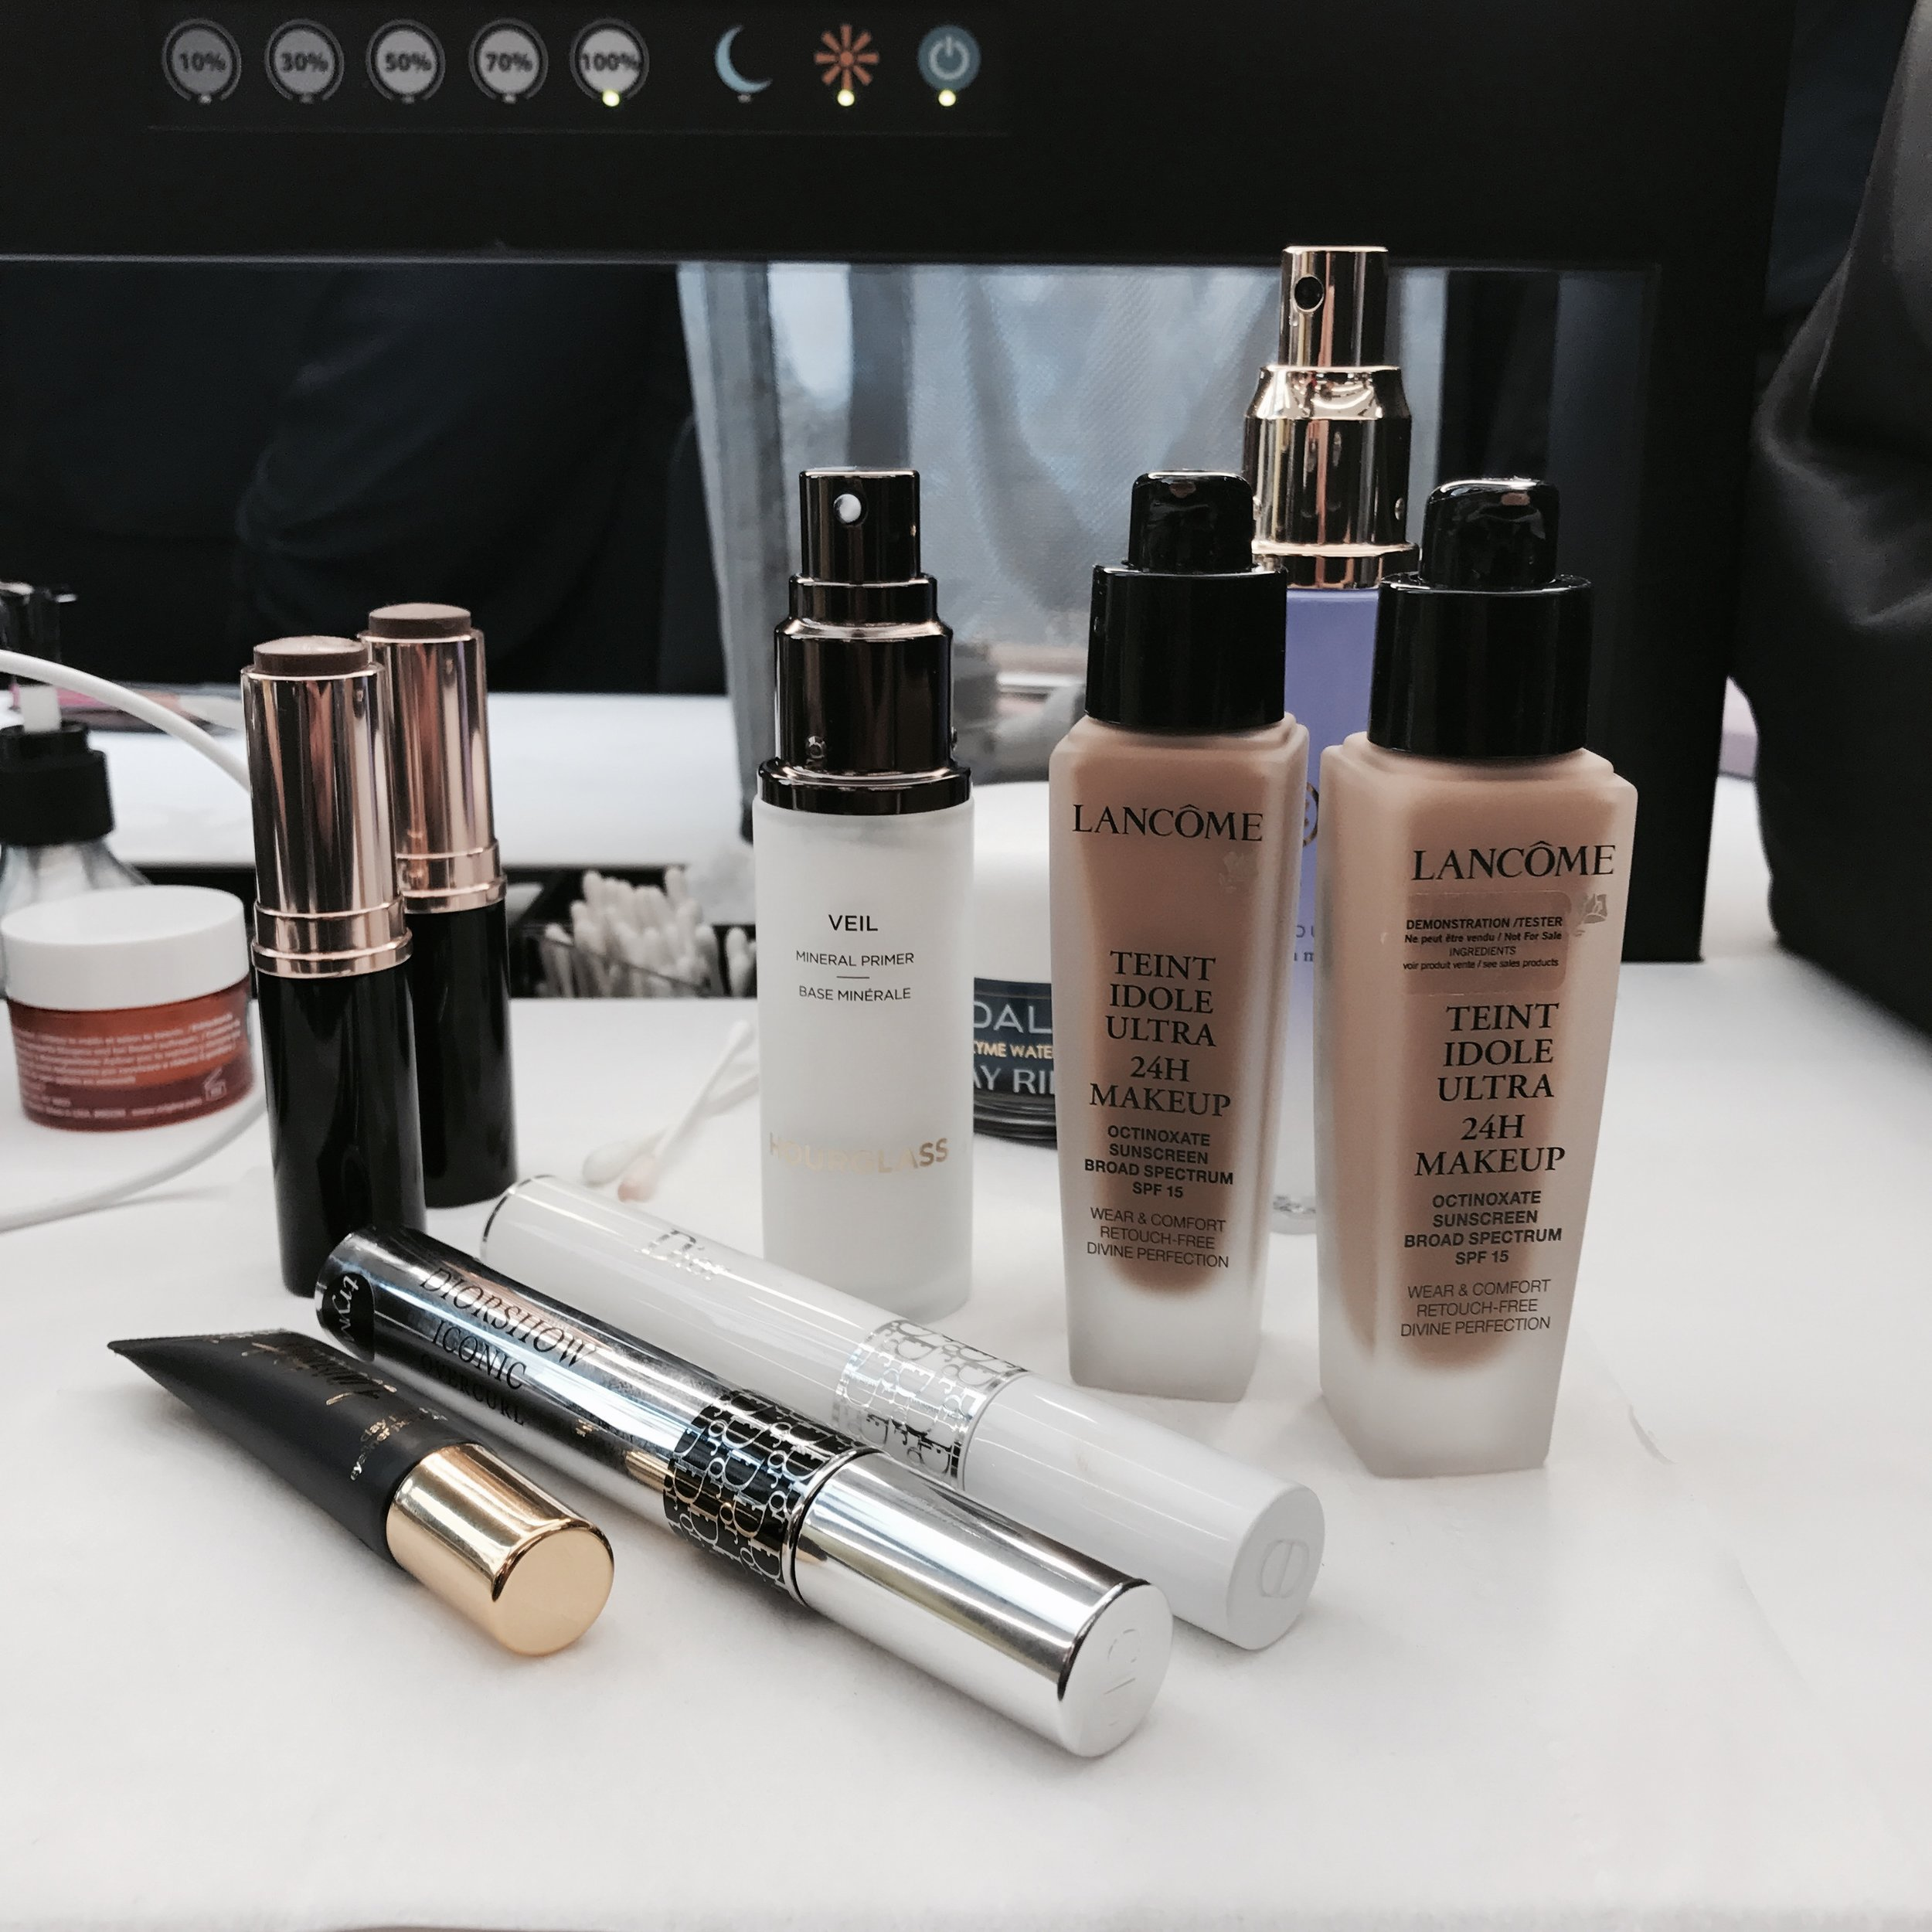 The products used during my makeover...